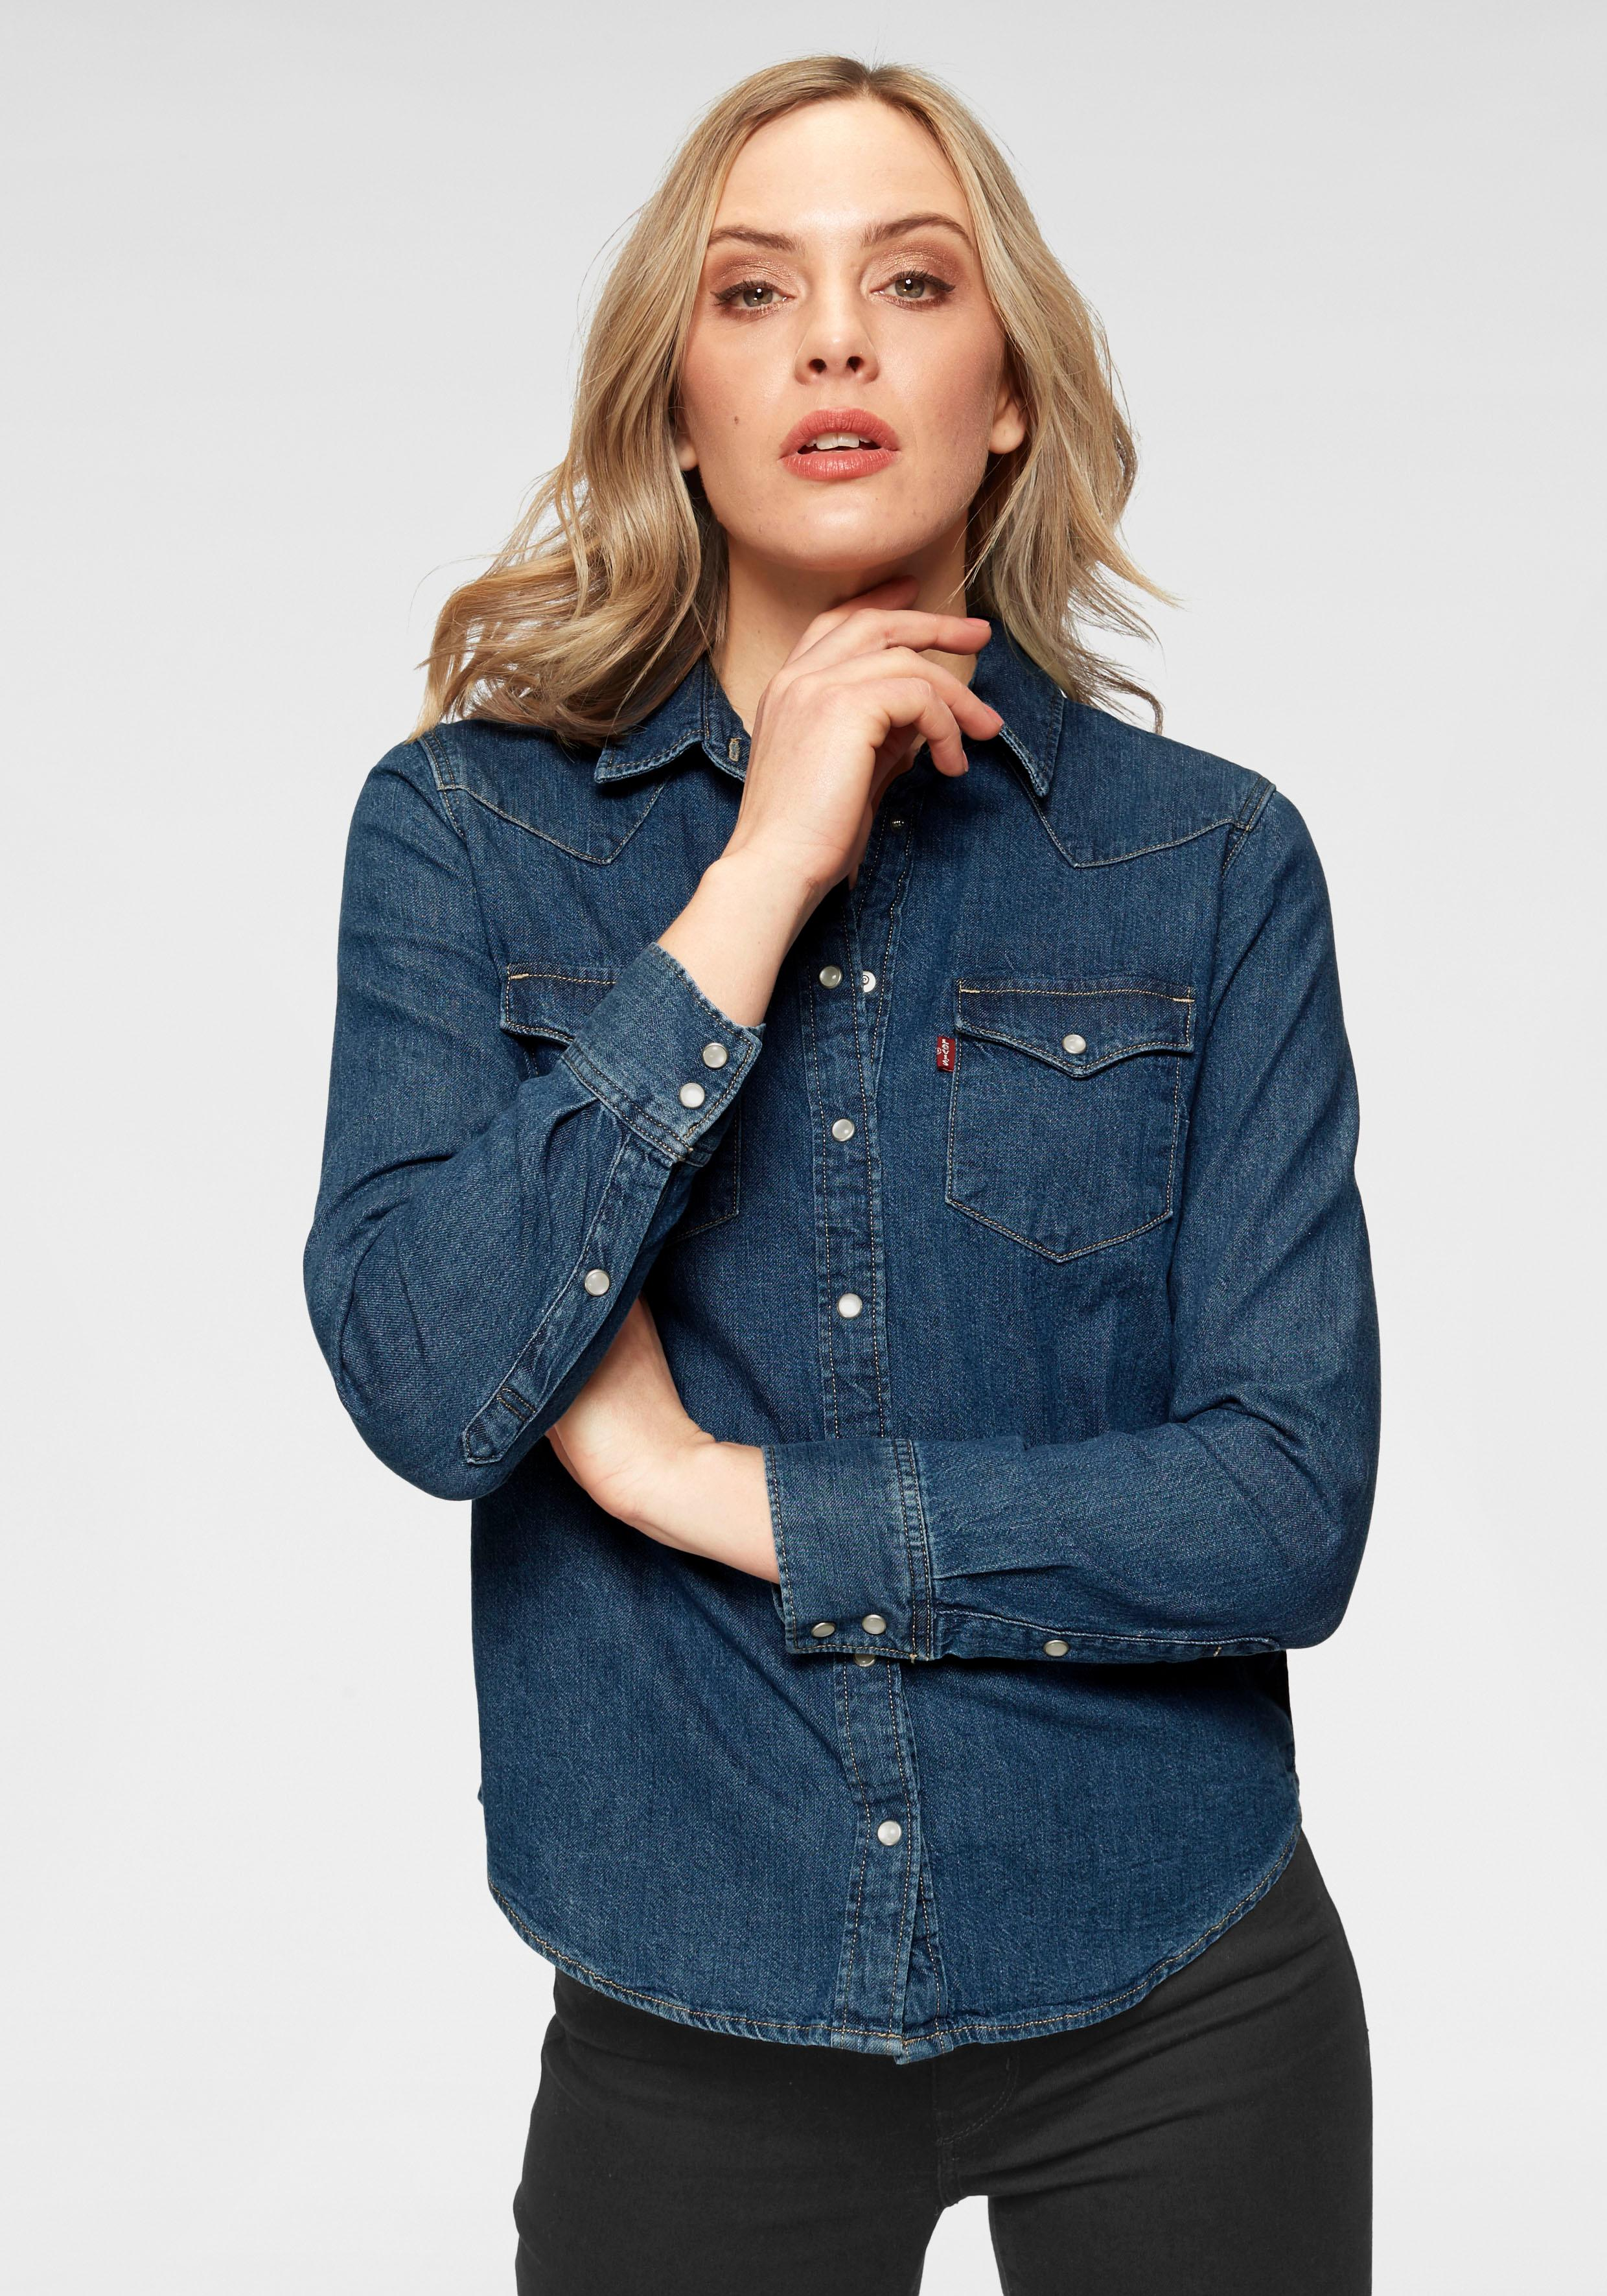 levis - Levi's Jeansbluse Ultimate Western Shirt